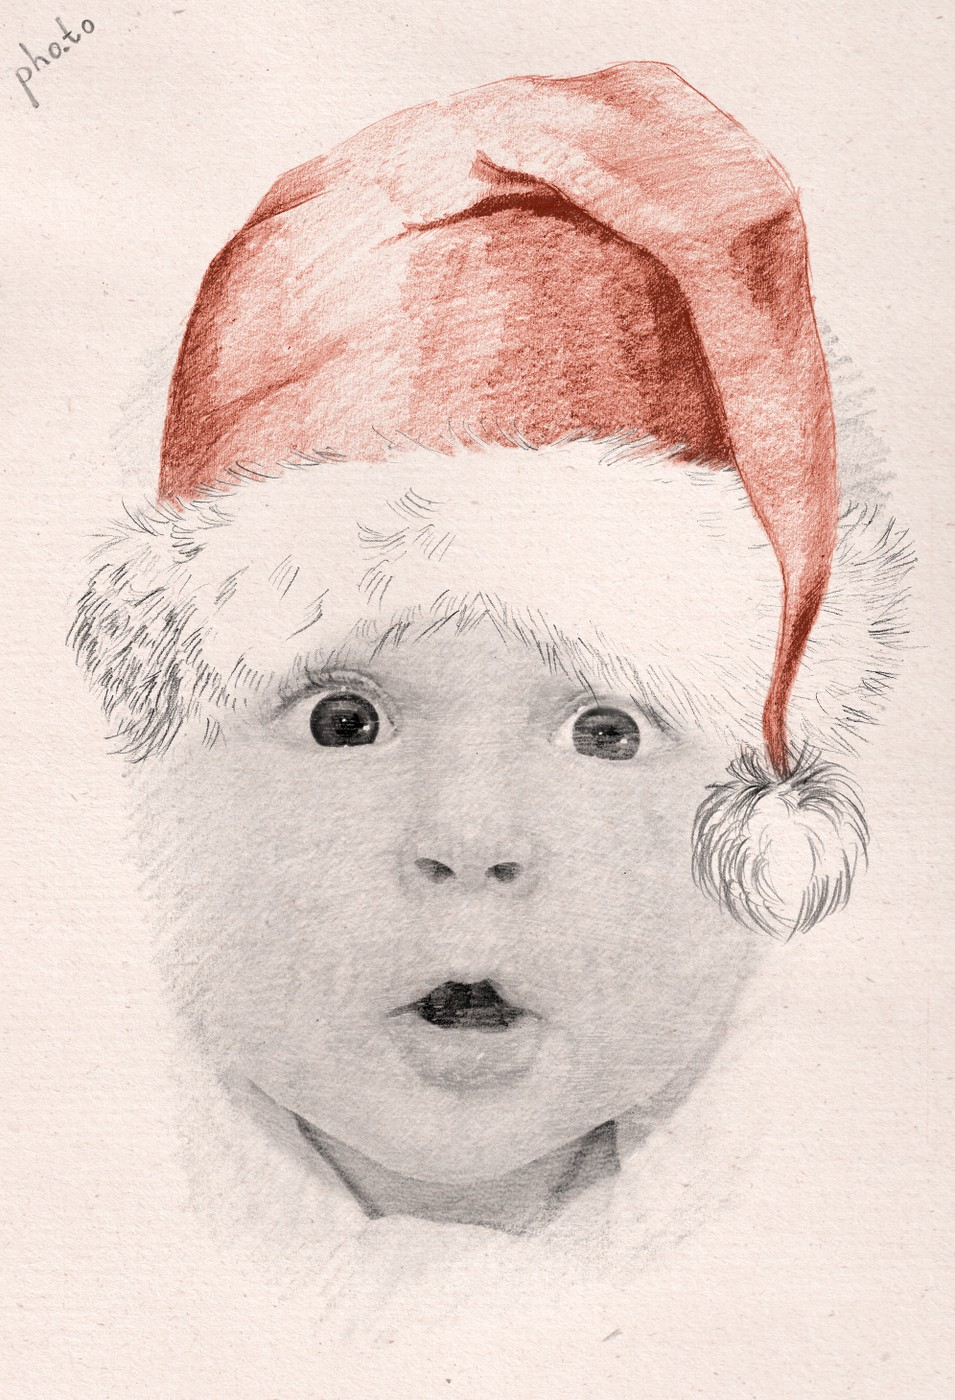 Kid's photo is converted into a Santa sketch for Winter holidays